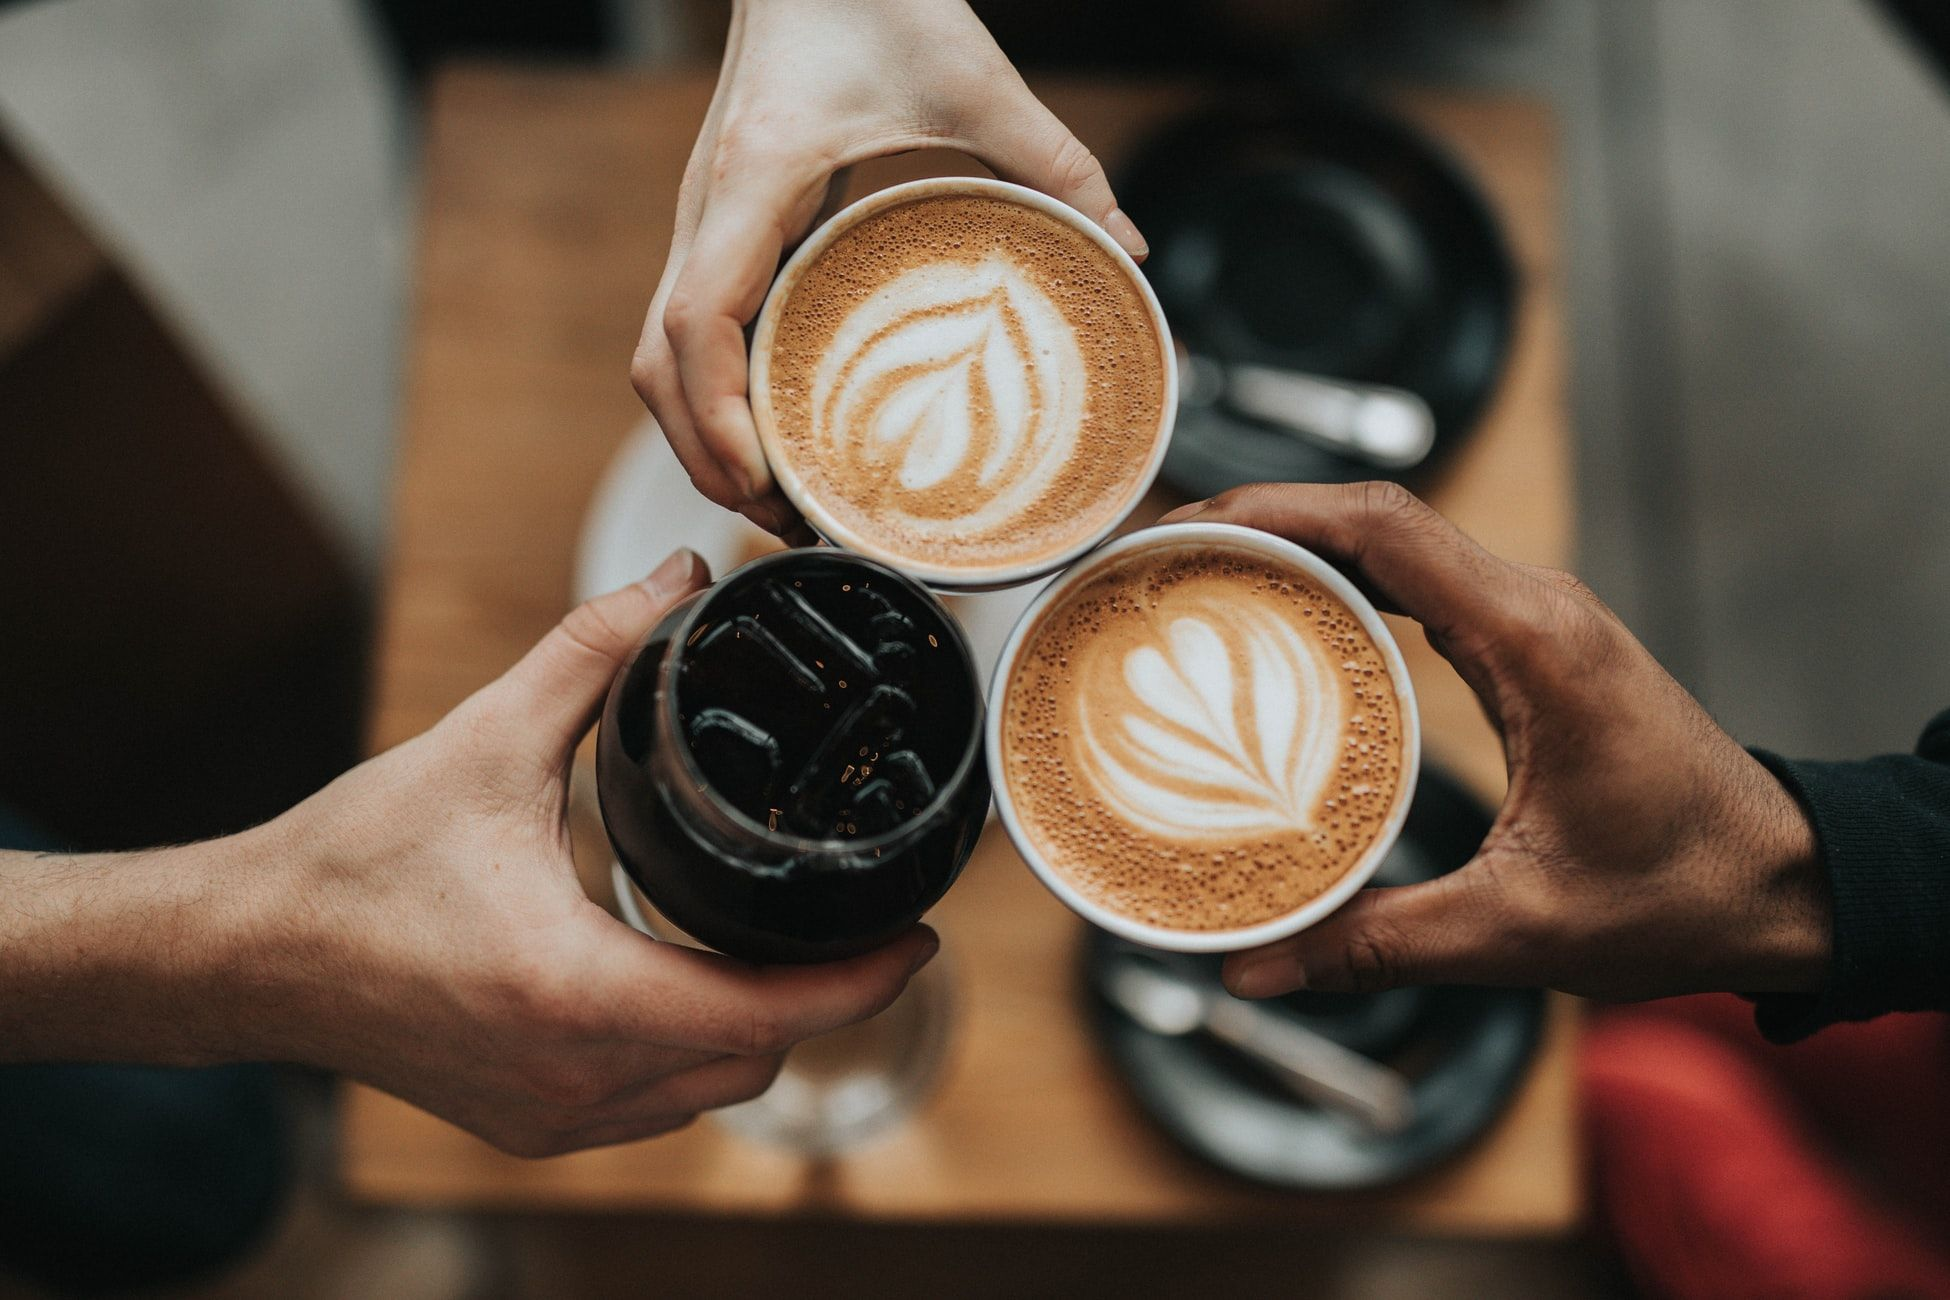 Health News 2021: Is Coffee Good For Your Health?